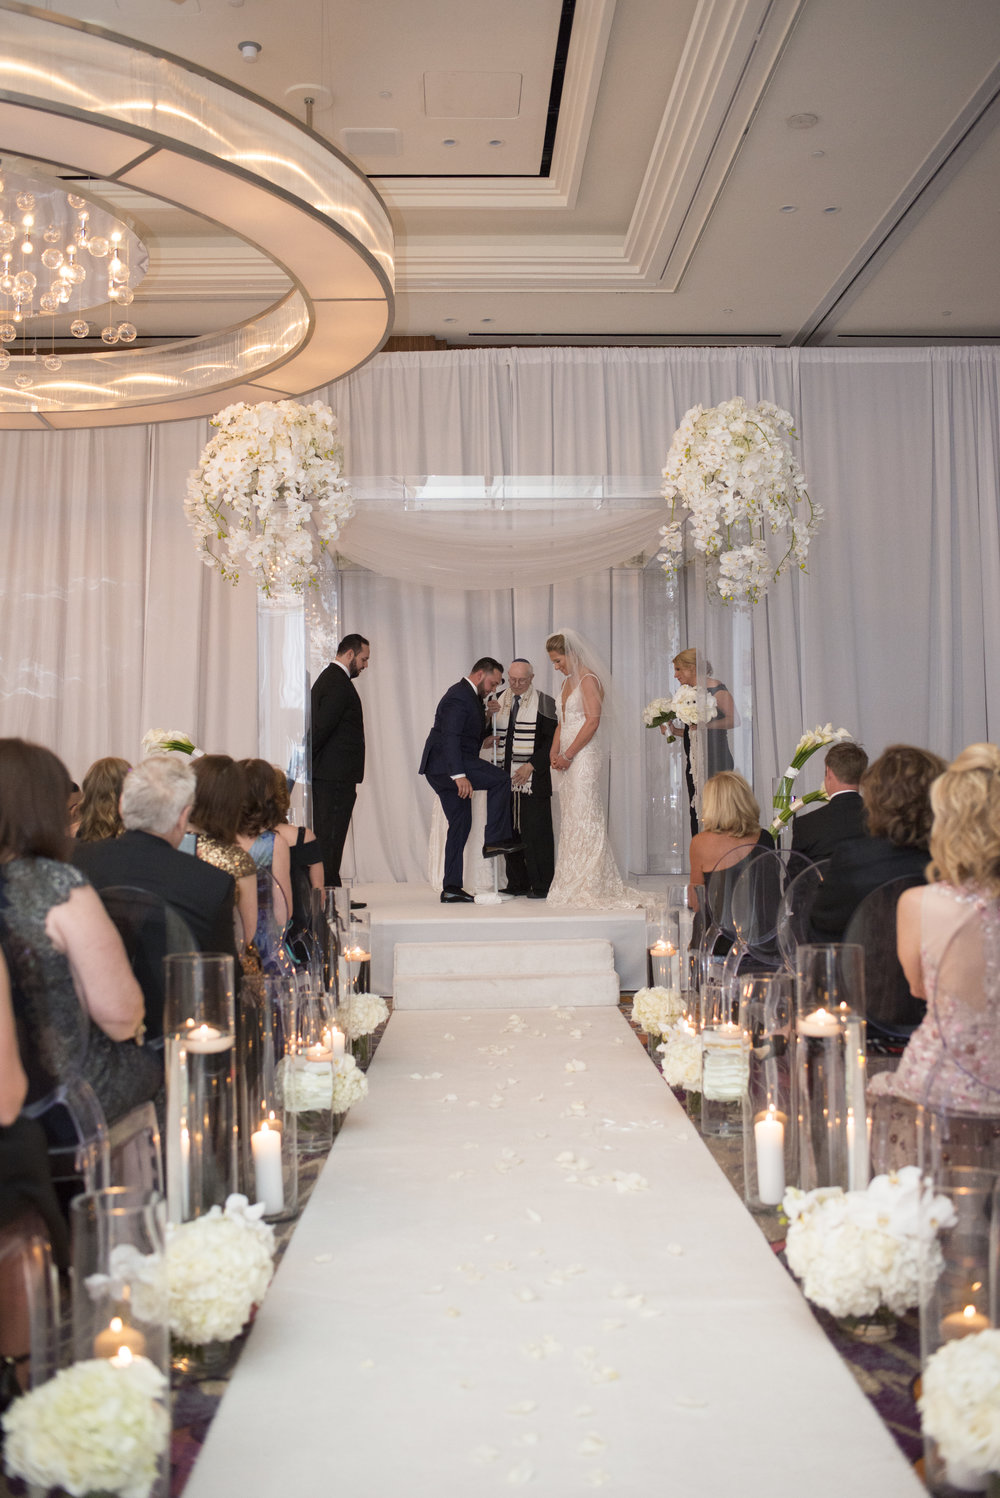 Luxury jewish wedding ceremony at the Mandarin Oriental by Destination Wedding Planner and Event Designer Andrea Eppolito. WEDDING PLANNING & EVENT DESIGN •  Andrea Eppolito Events , PHOTOGRAPHY •  AltF Photography ,  FLORAL AND DECOR DESIGN & PRODUCTION • Destinations by Design , CATERING •  Mandarin Oriental Las Vegas , COCKTAILS •  The Grand Bevy , WEDDING GOWN •  Galia Lahav ,  SHOES •  Jimmy Choo